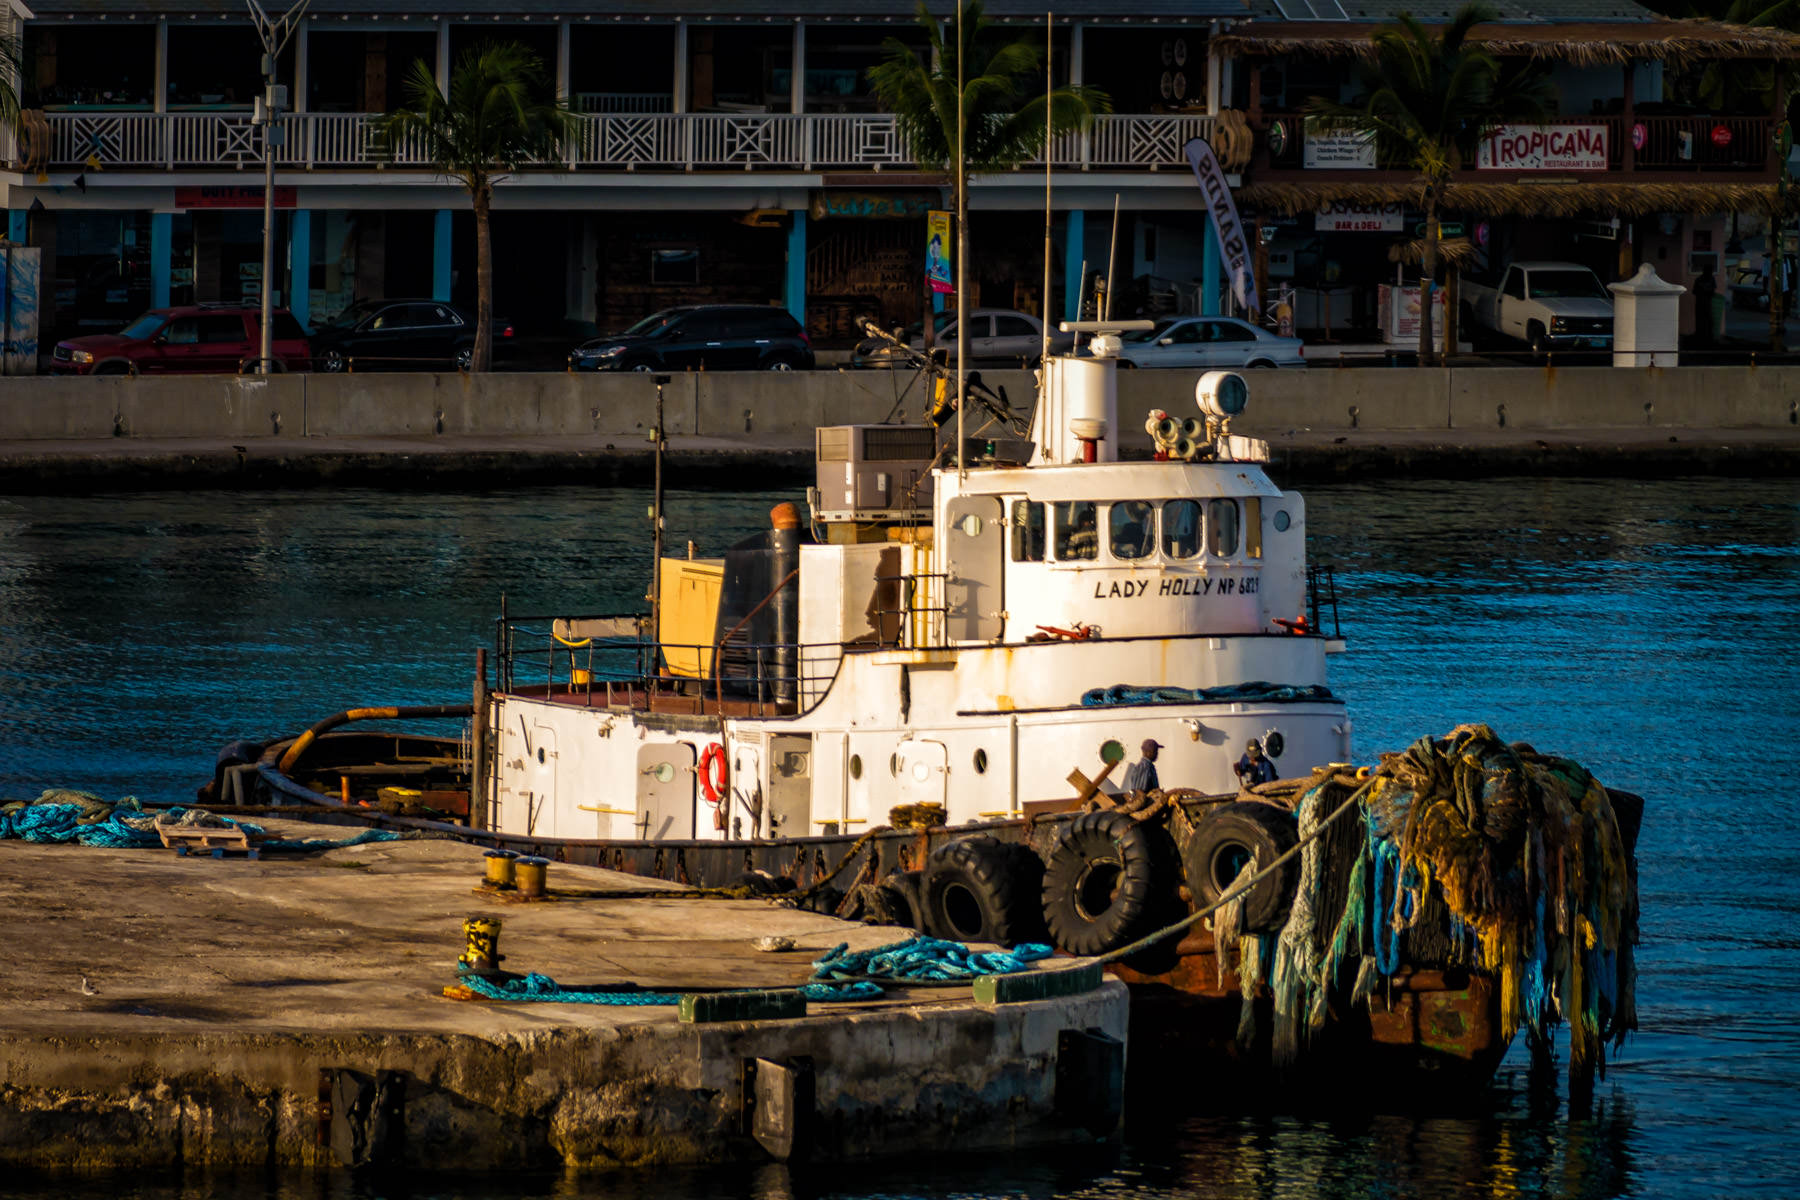 An old tugboat readies to go to work for the day in the harbour at Nassau, Bahamas.